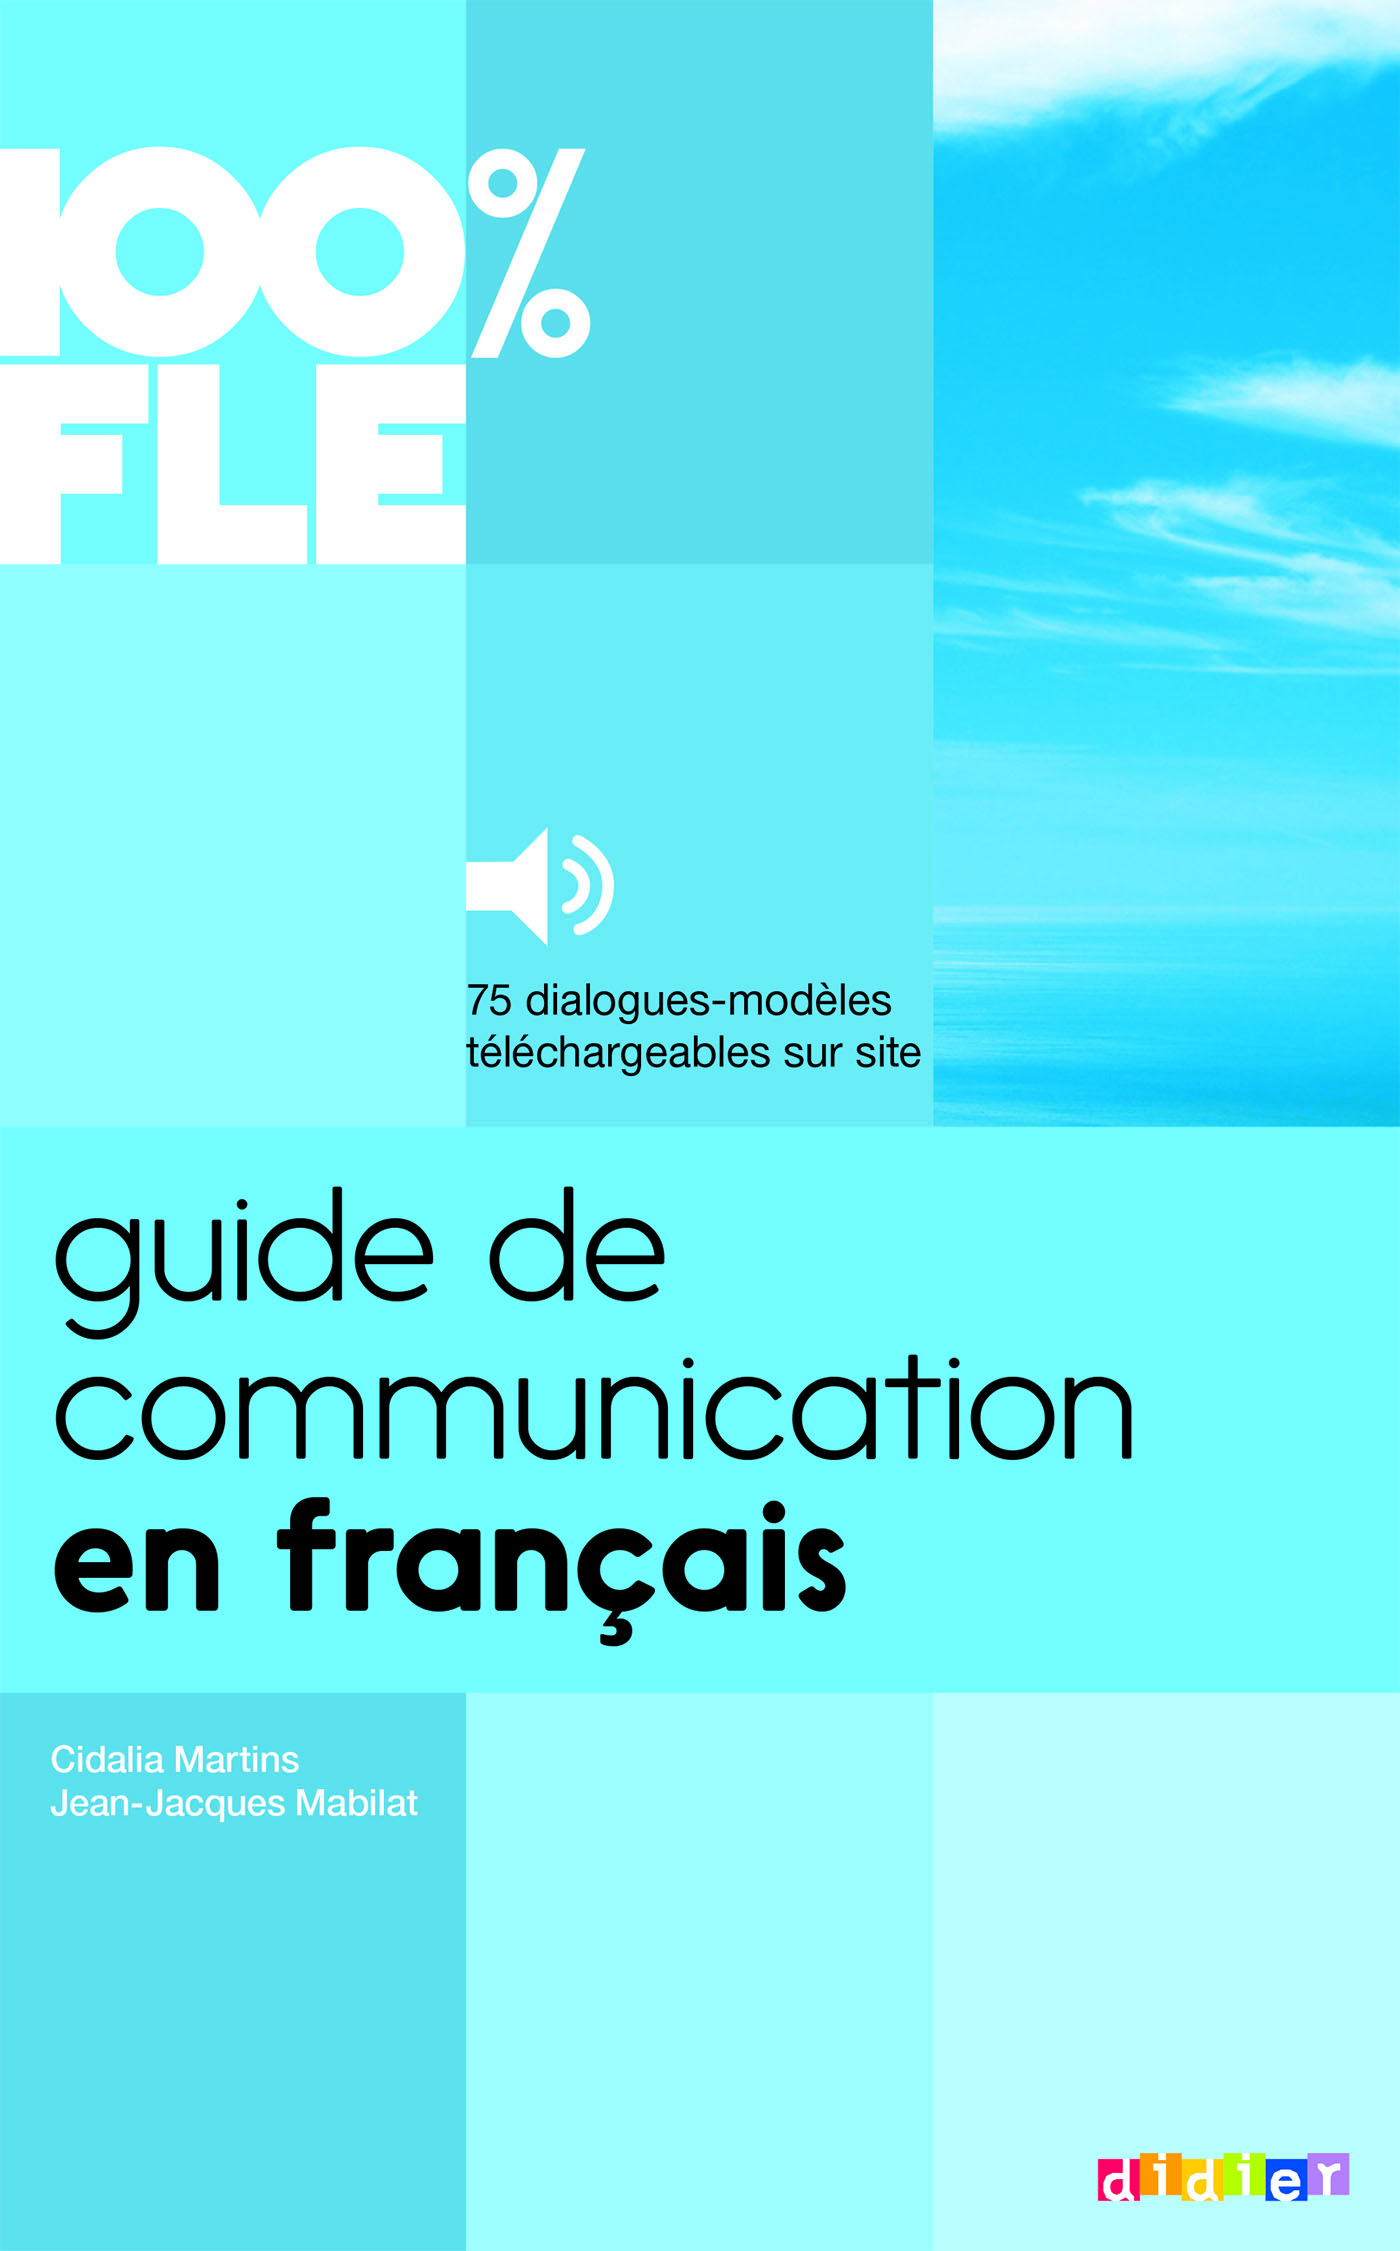 GUIDE DE COMMUNICATION